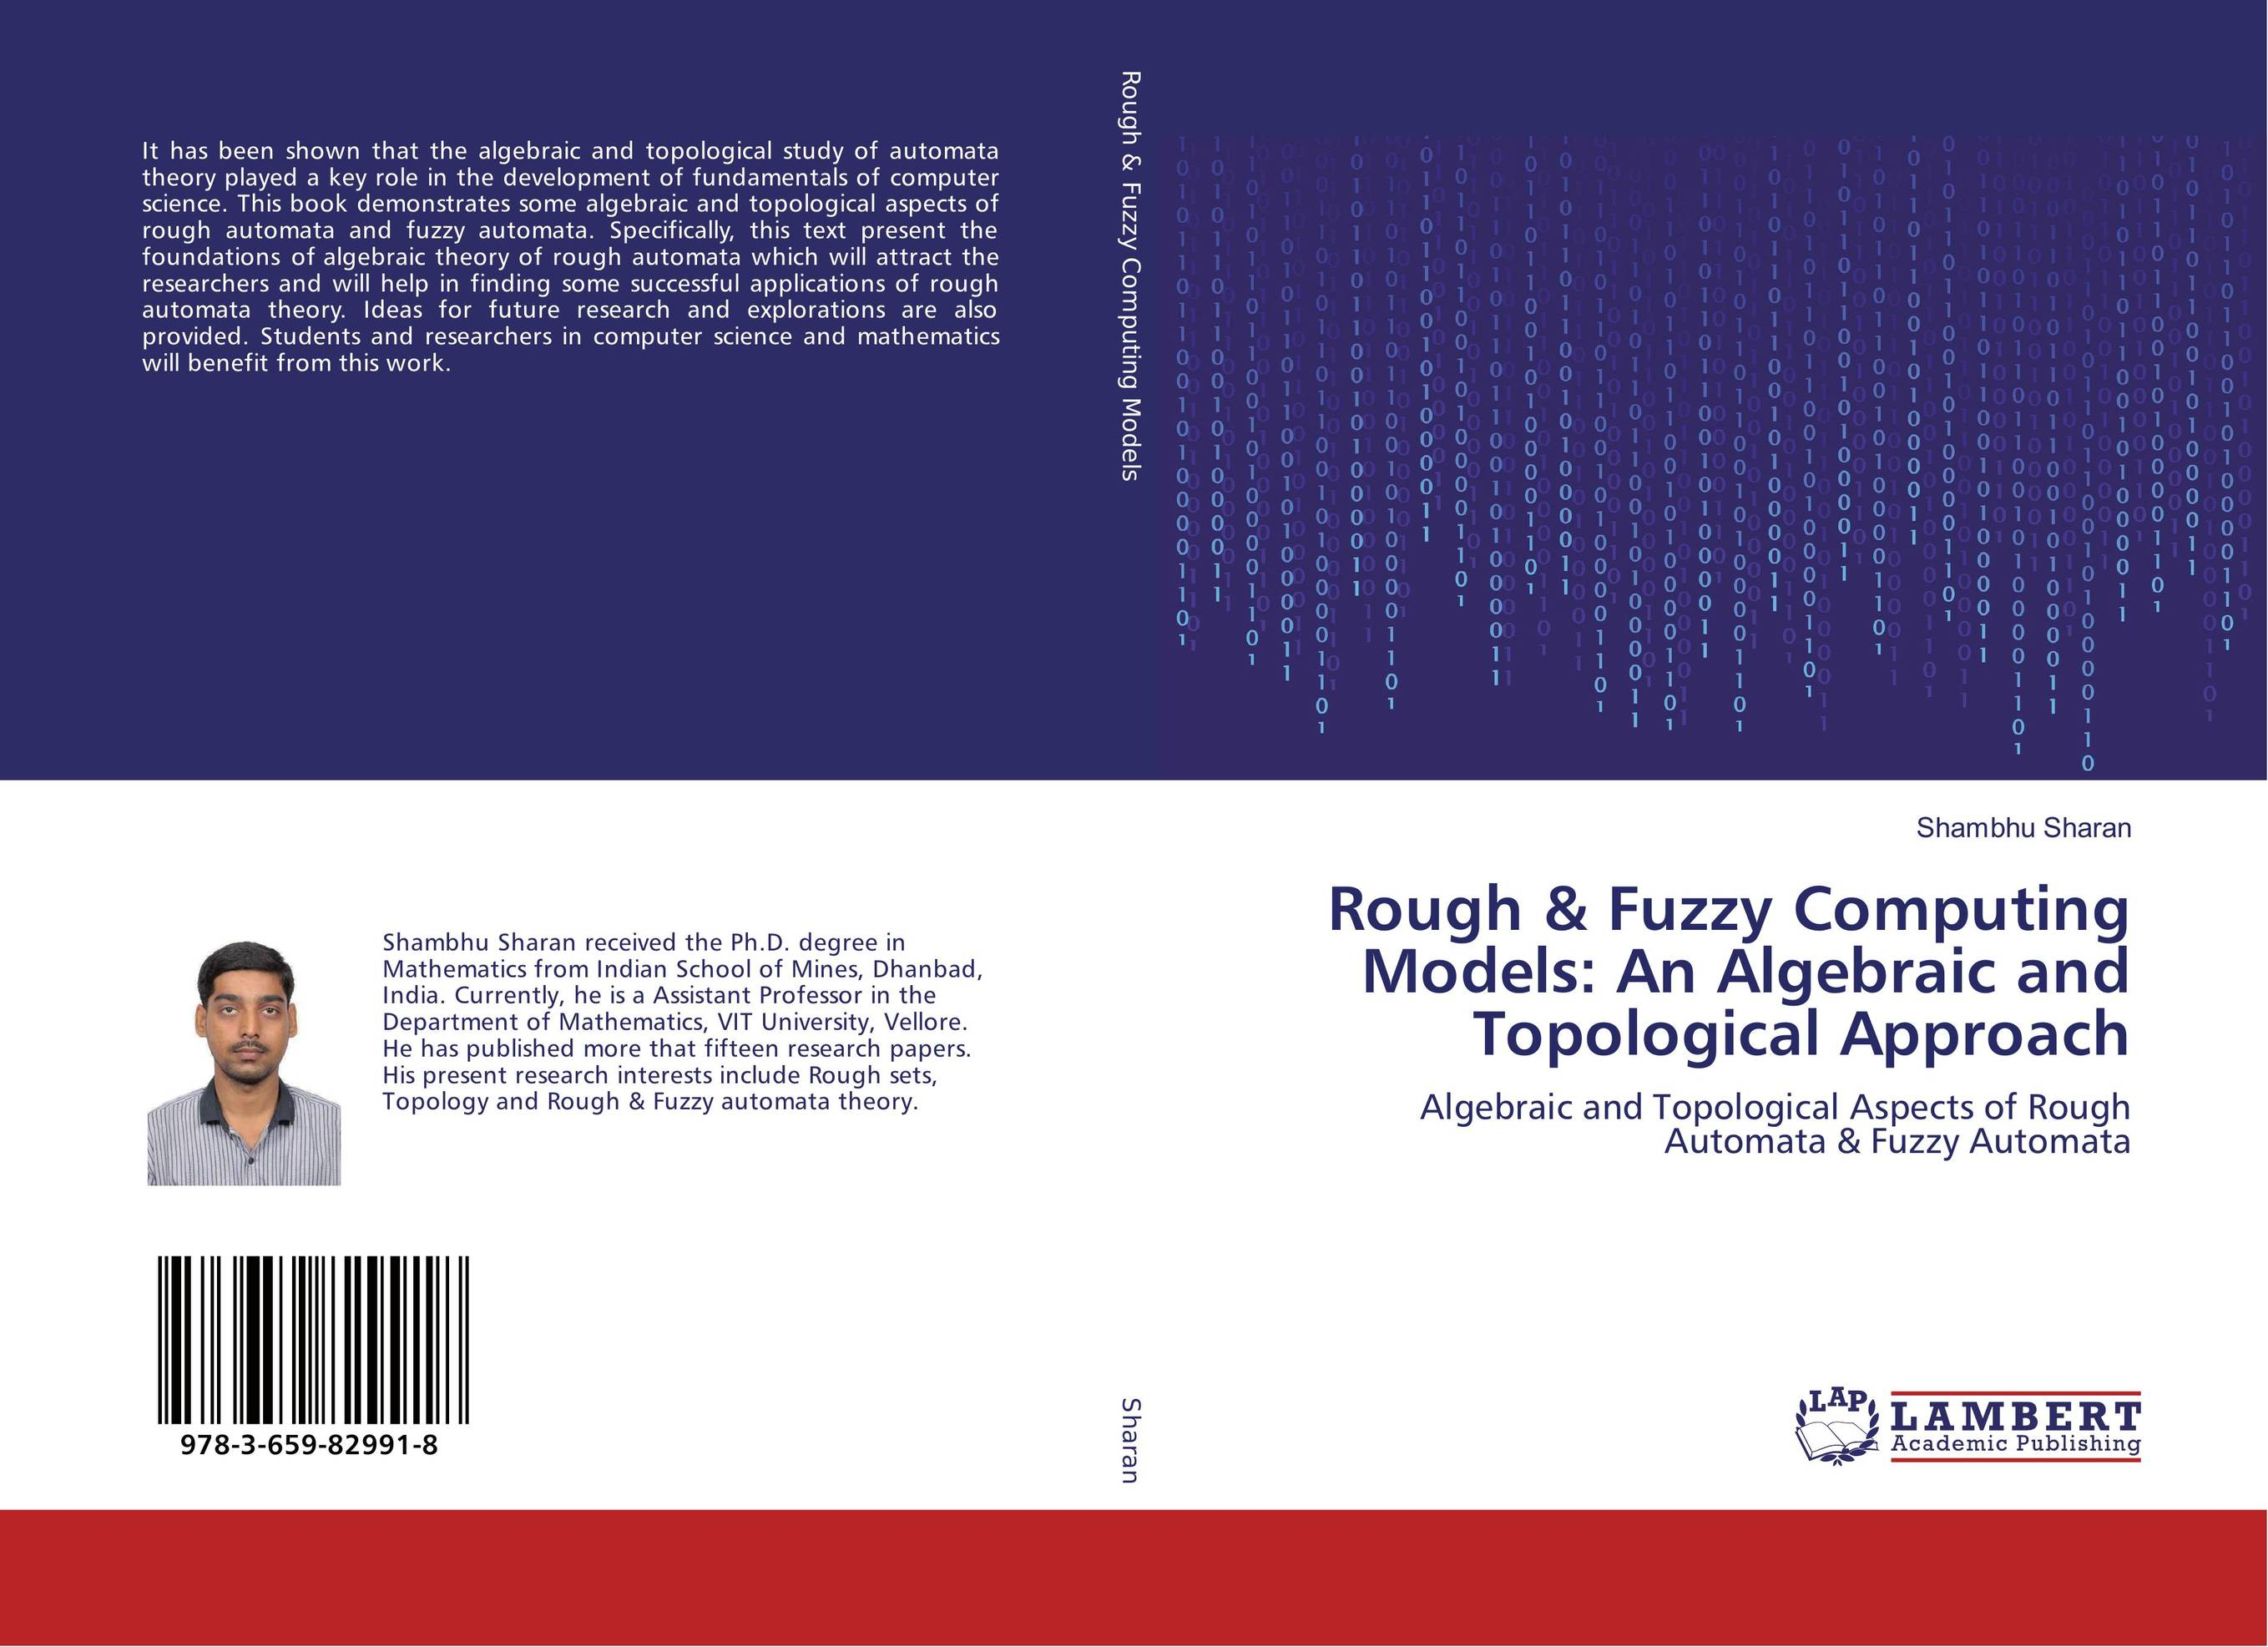 Rough & Fuzzy Computing Models: An Algebraic and Topological Approach basics of automata languages and computation